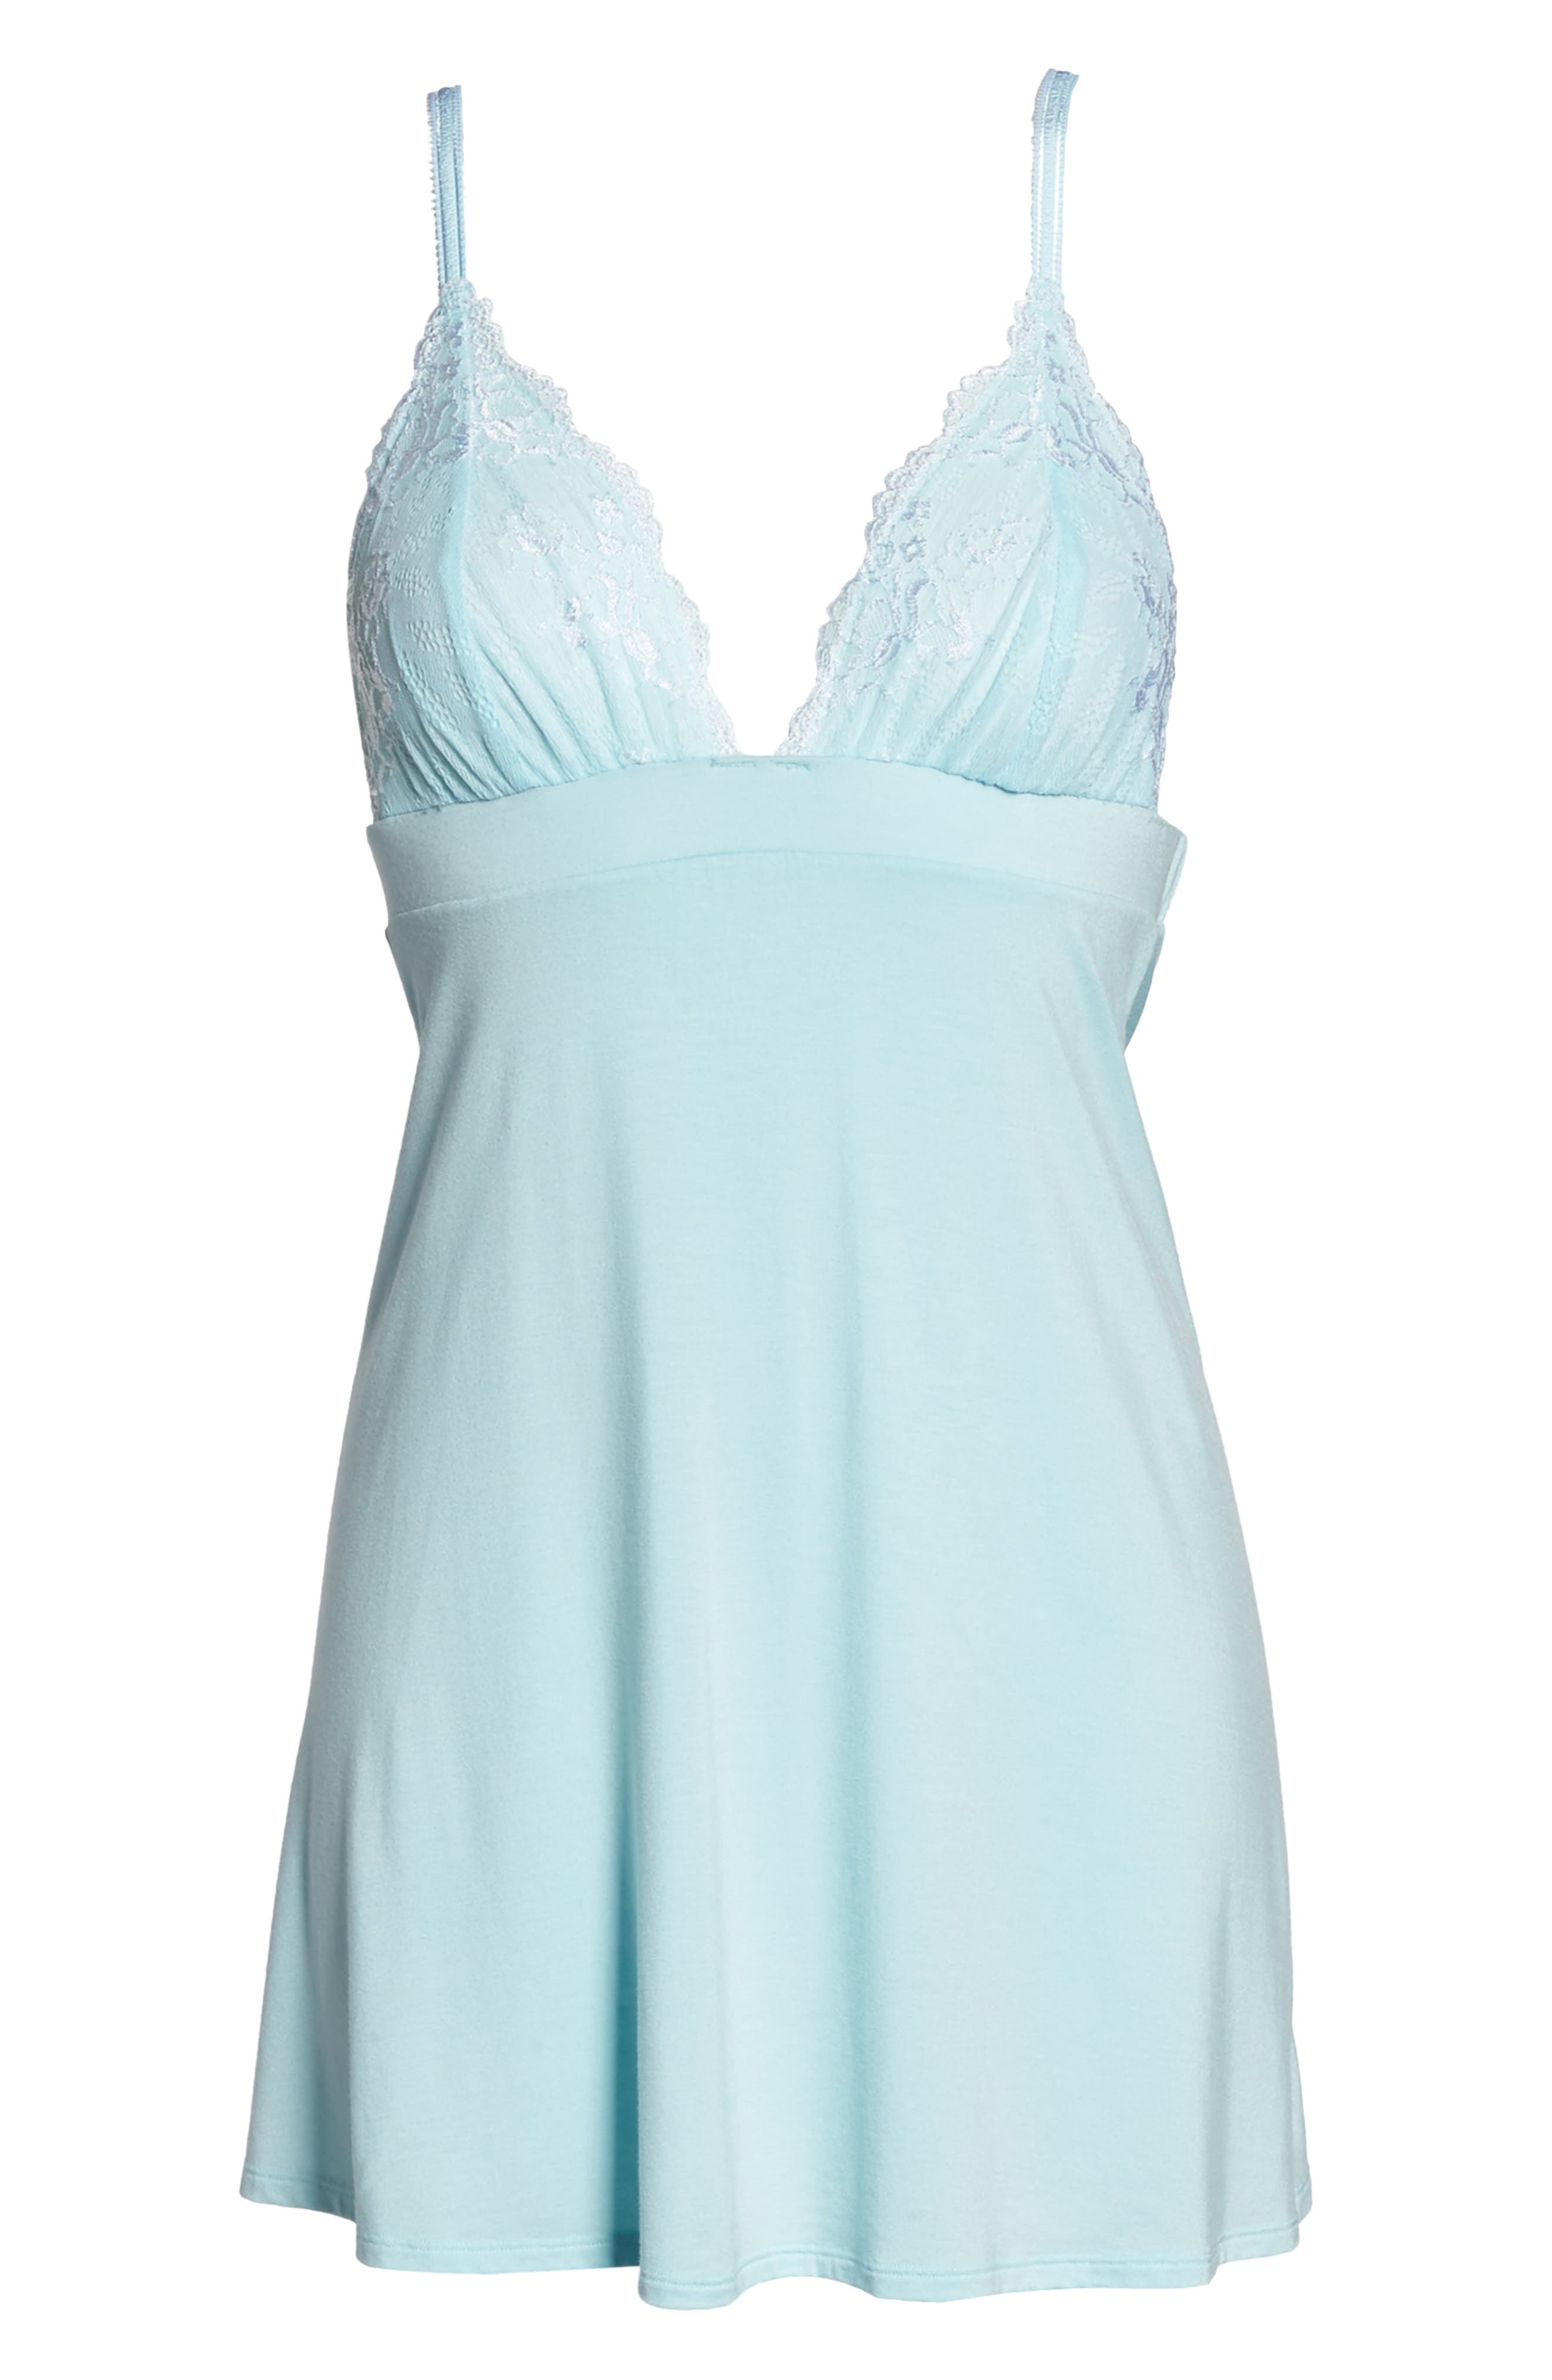 Demure Chemise,                             Alternate thumbnail 6, color,                             Bridal Blue